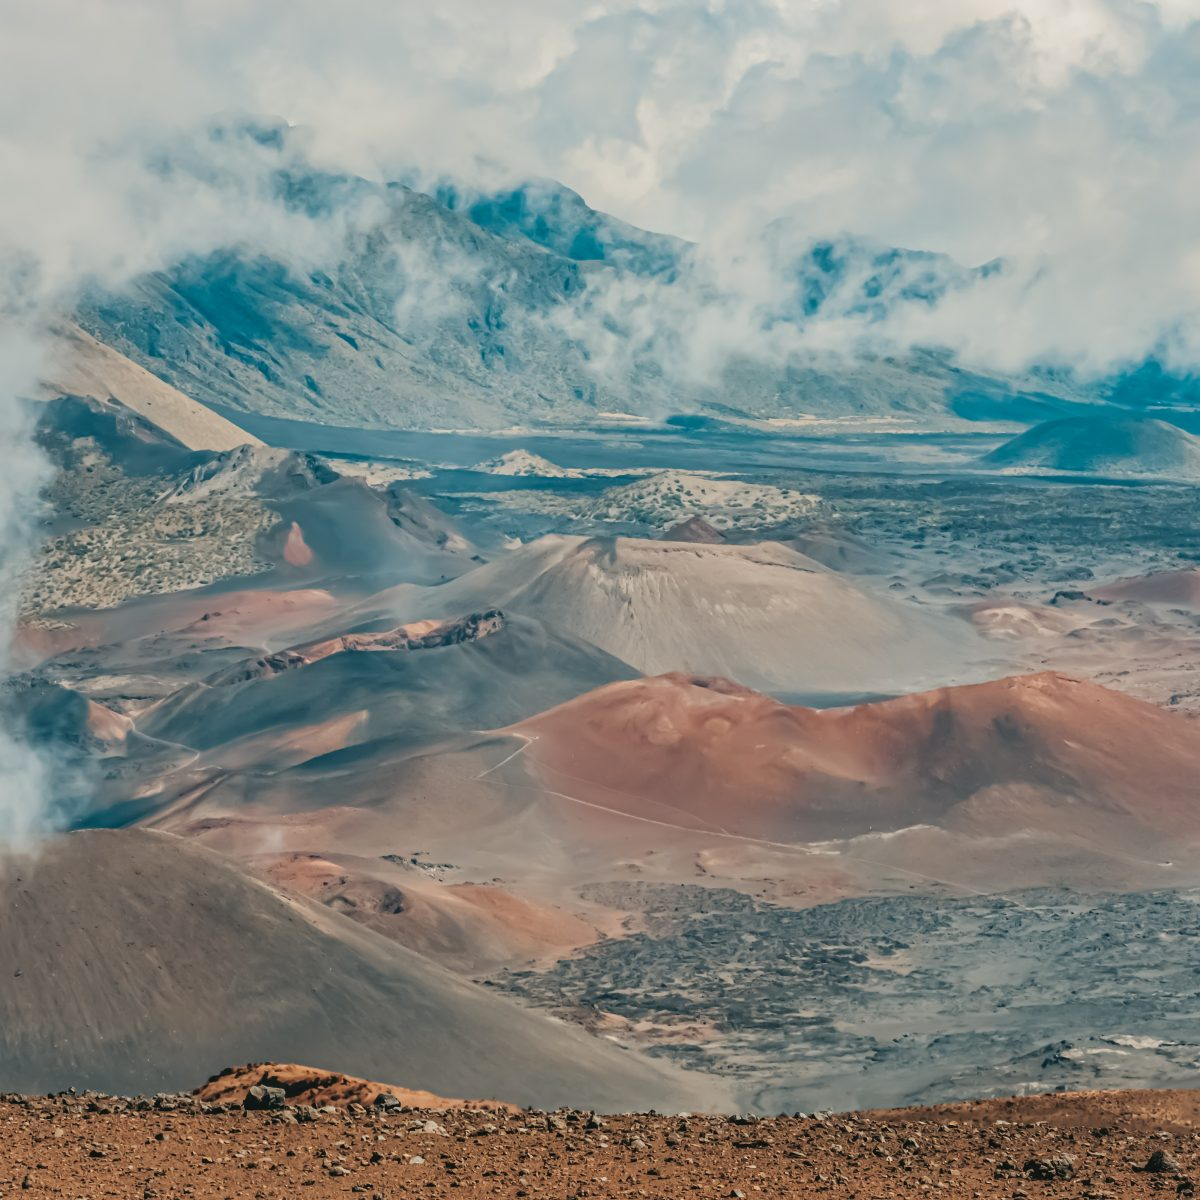 Haleakala or walking on mars